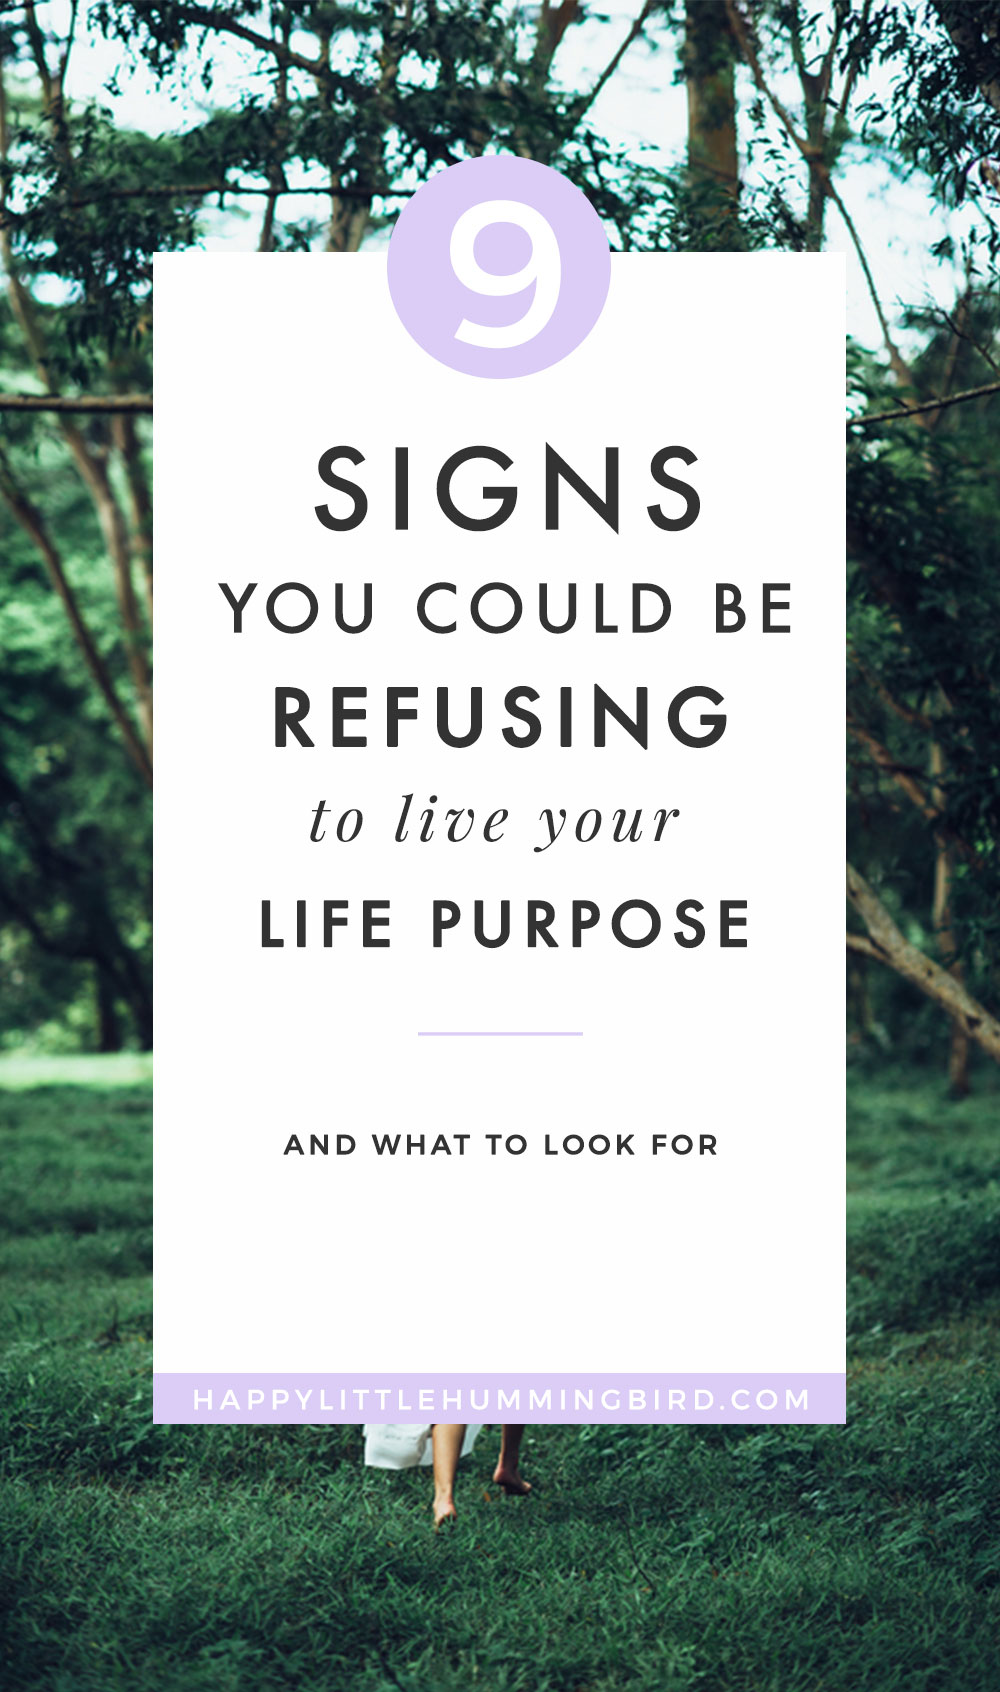 Ever get the feeling that you're refusing to live your life purpose? You know you've got a calling but fear, doubt and lack of direction make it impossible for you to act and move forward. Learn the 9 signs you could denying yourself of the work you were truly born to do.